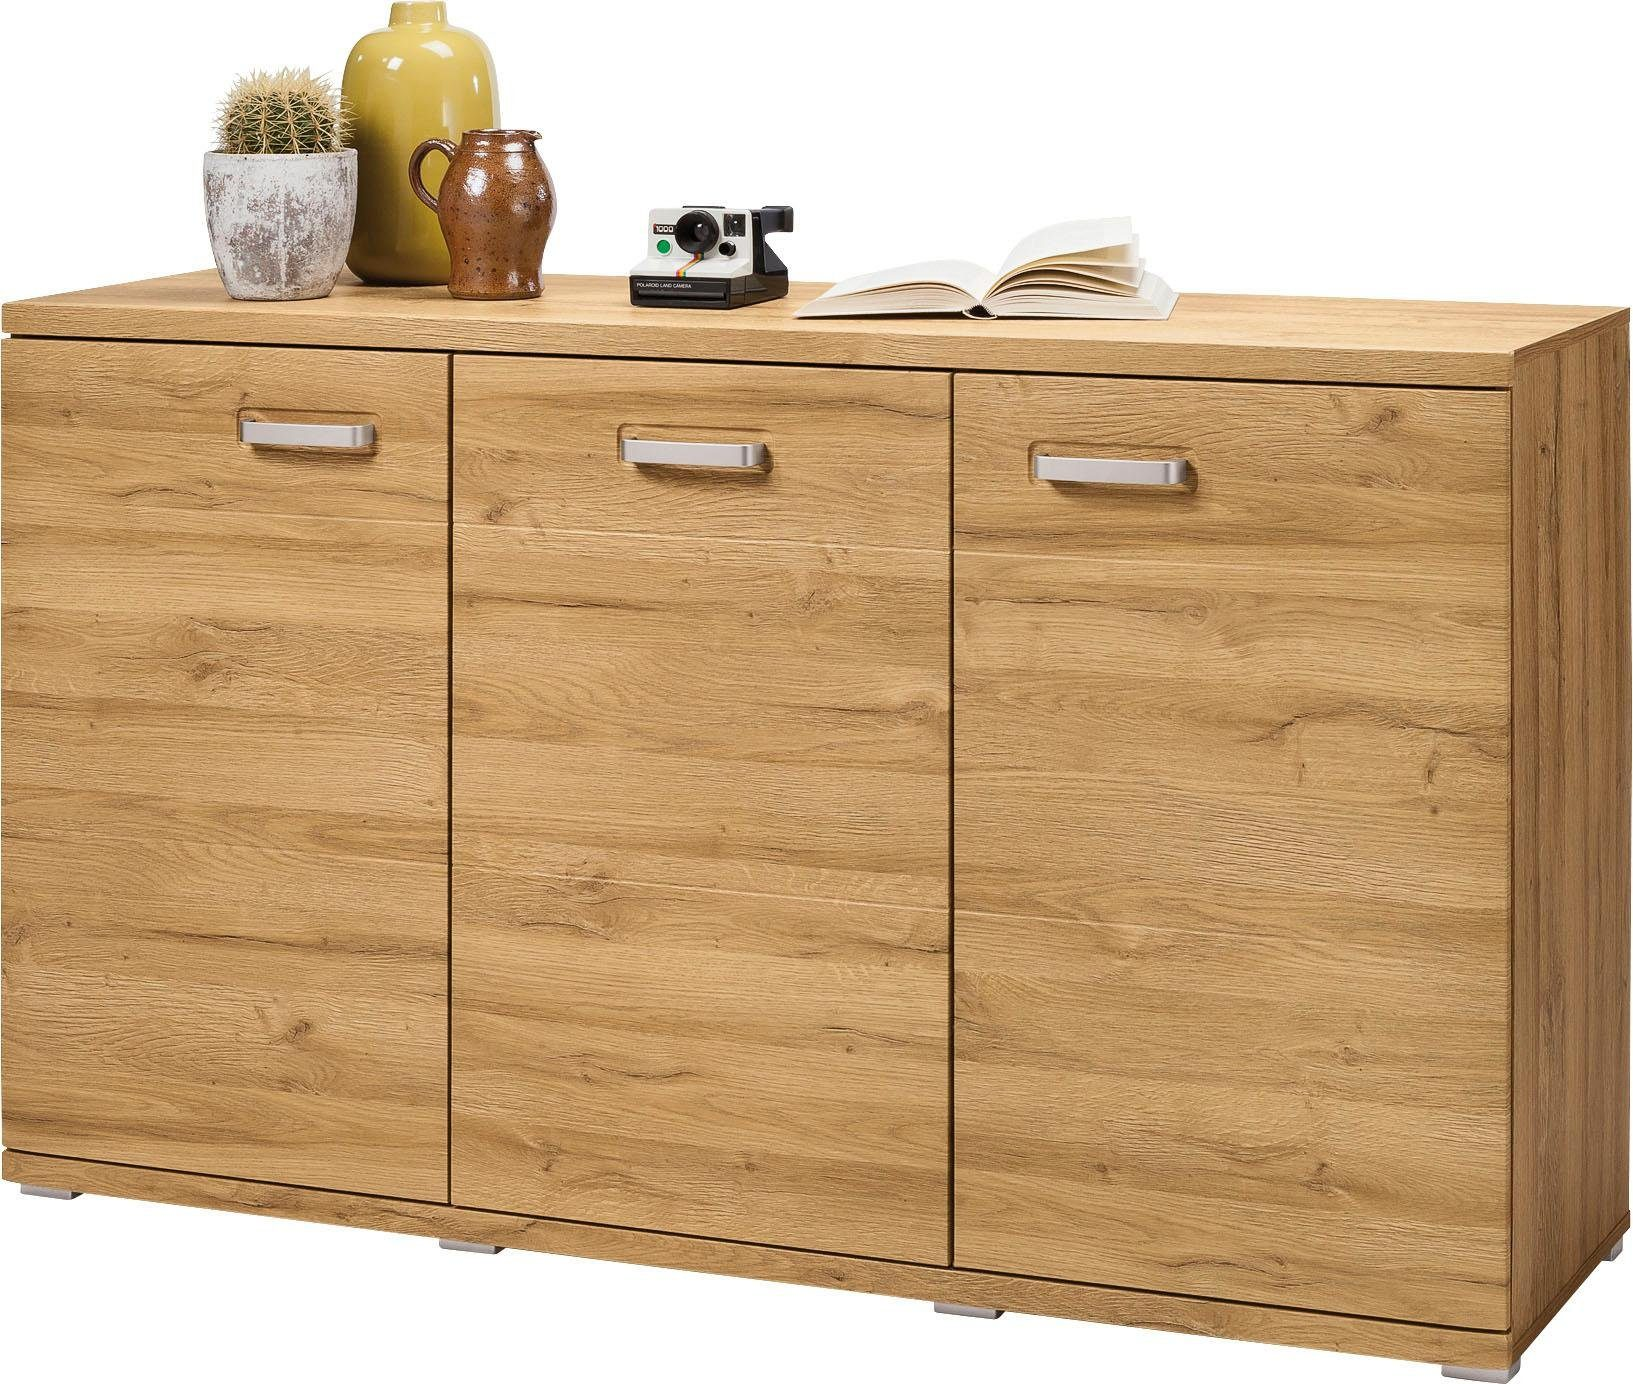 Set One By Musterring Sideboard  Madison Breite 150 Cm Online Kaufen Set One By Musterring Tv Boards Komnit Store